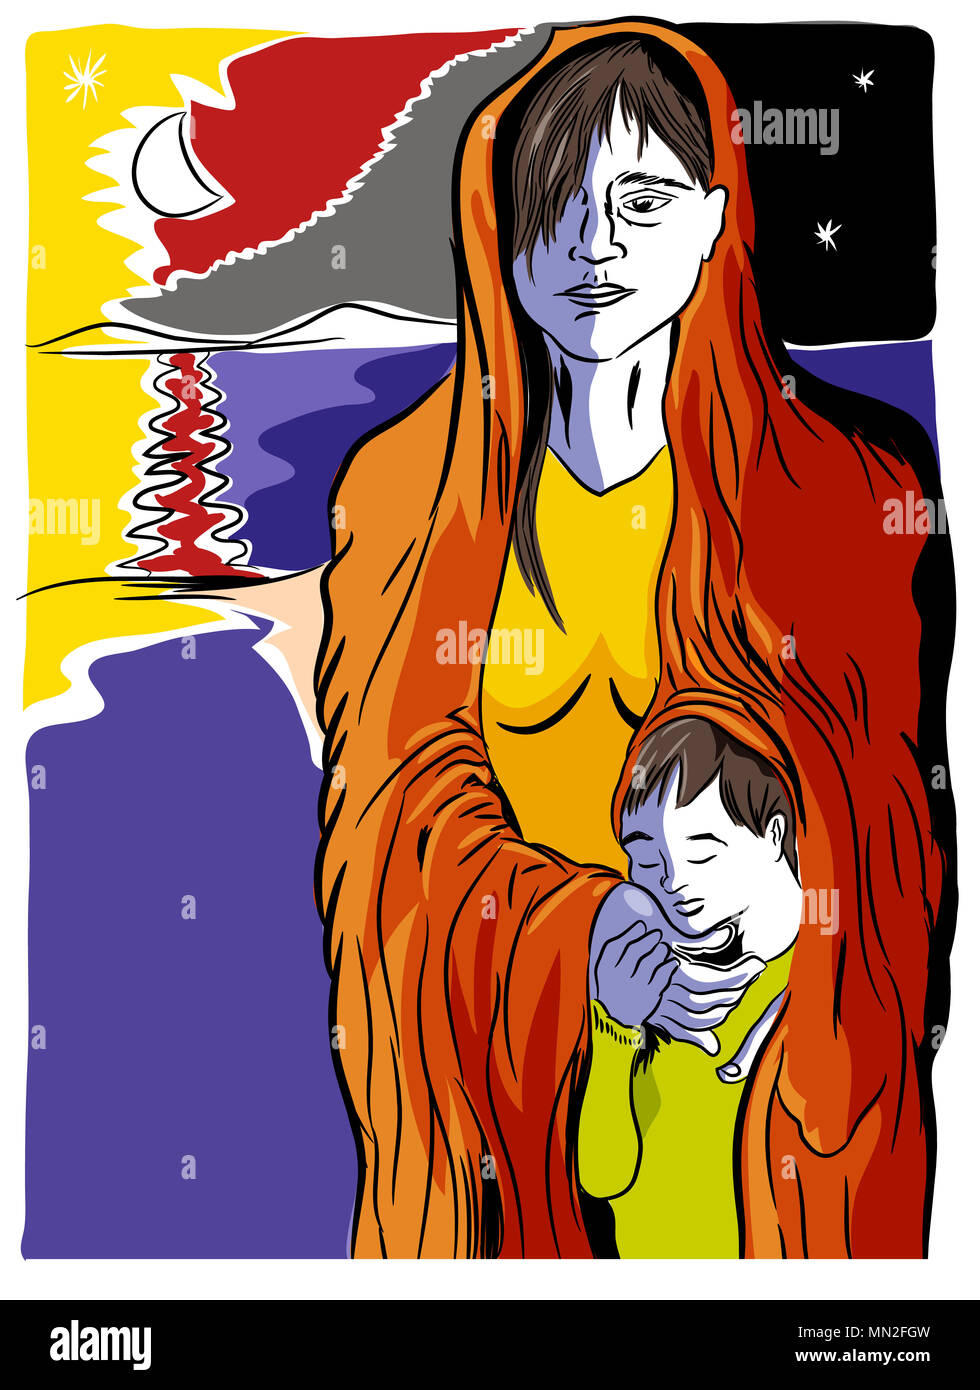 Refugees problem.  Mother and child refugees foreigners immigrants near the sea. Stock Photo